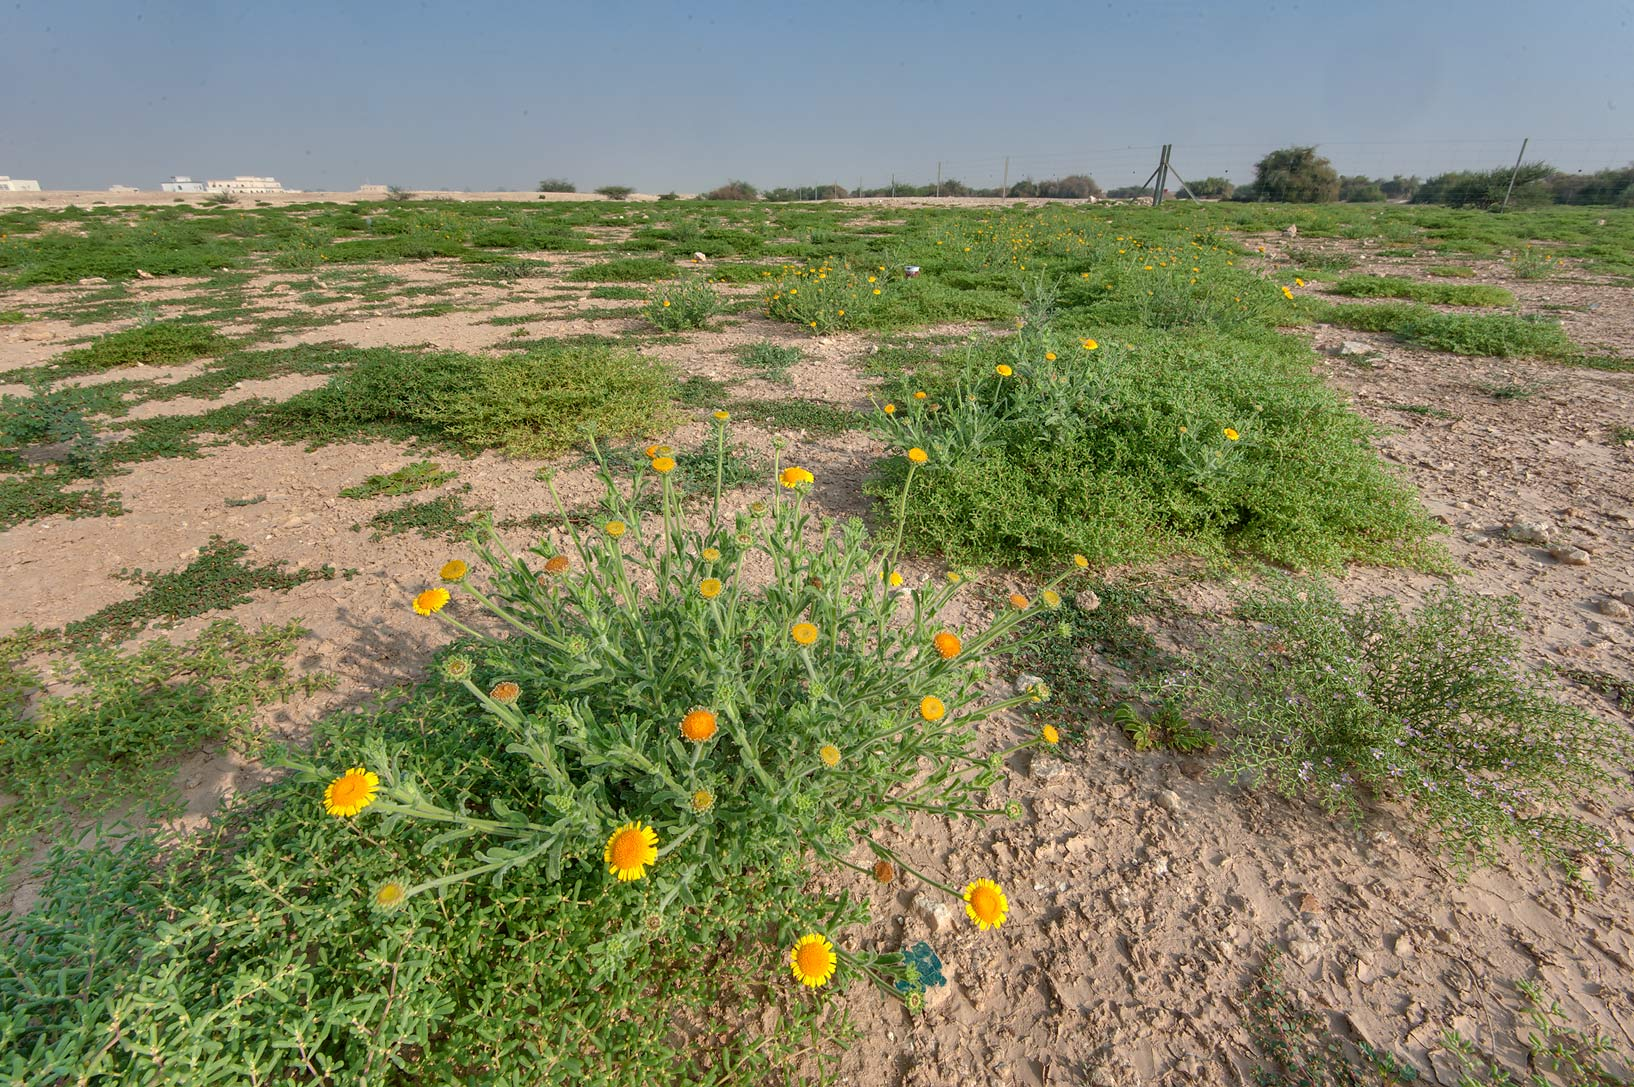 Pulicaria guestii among other green plants in...from camel race track. Lekhraib, Qatar